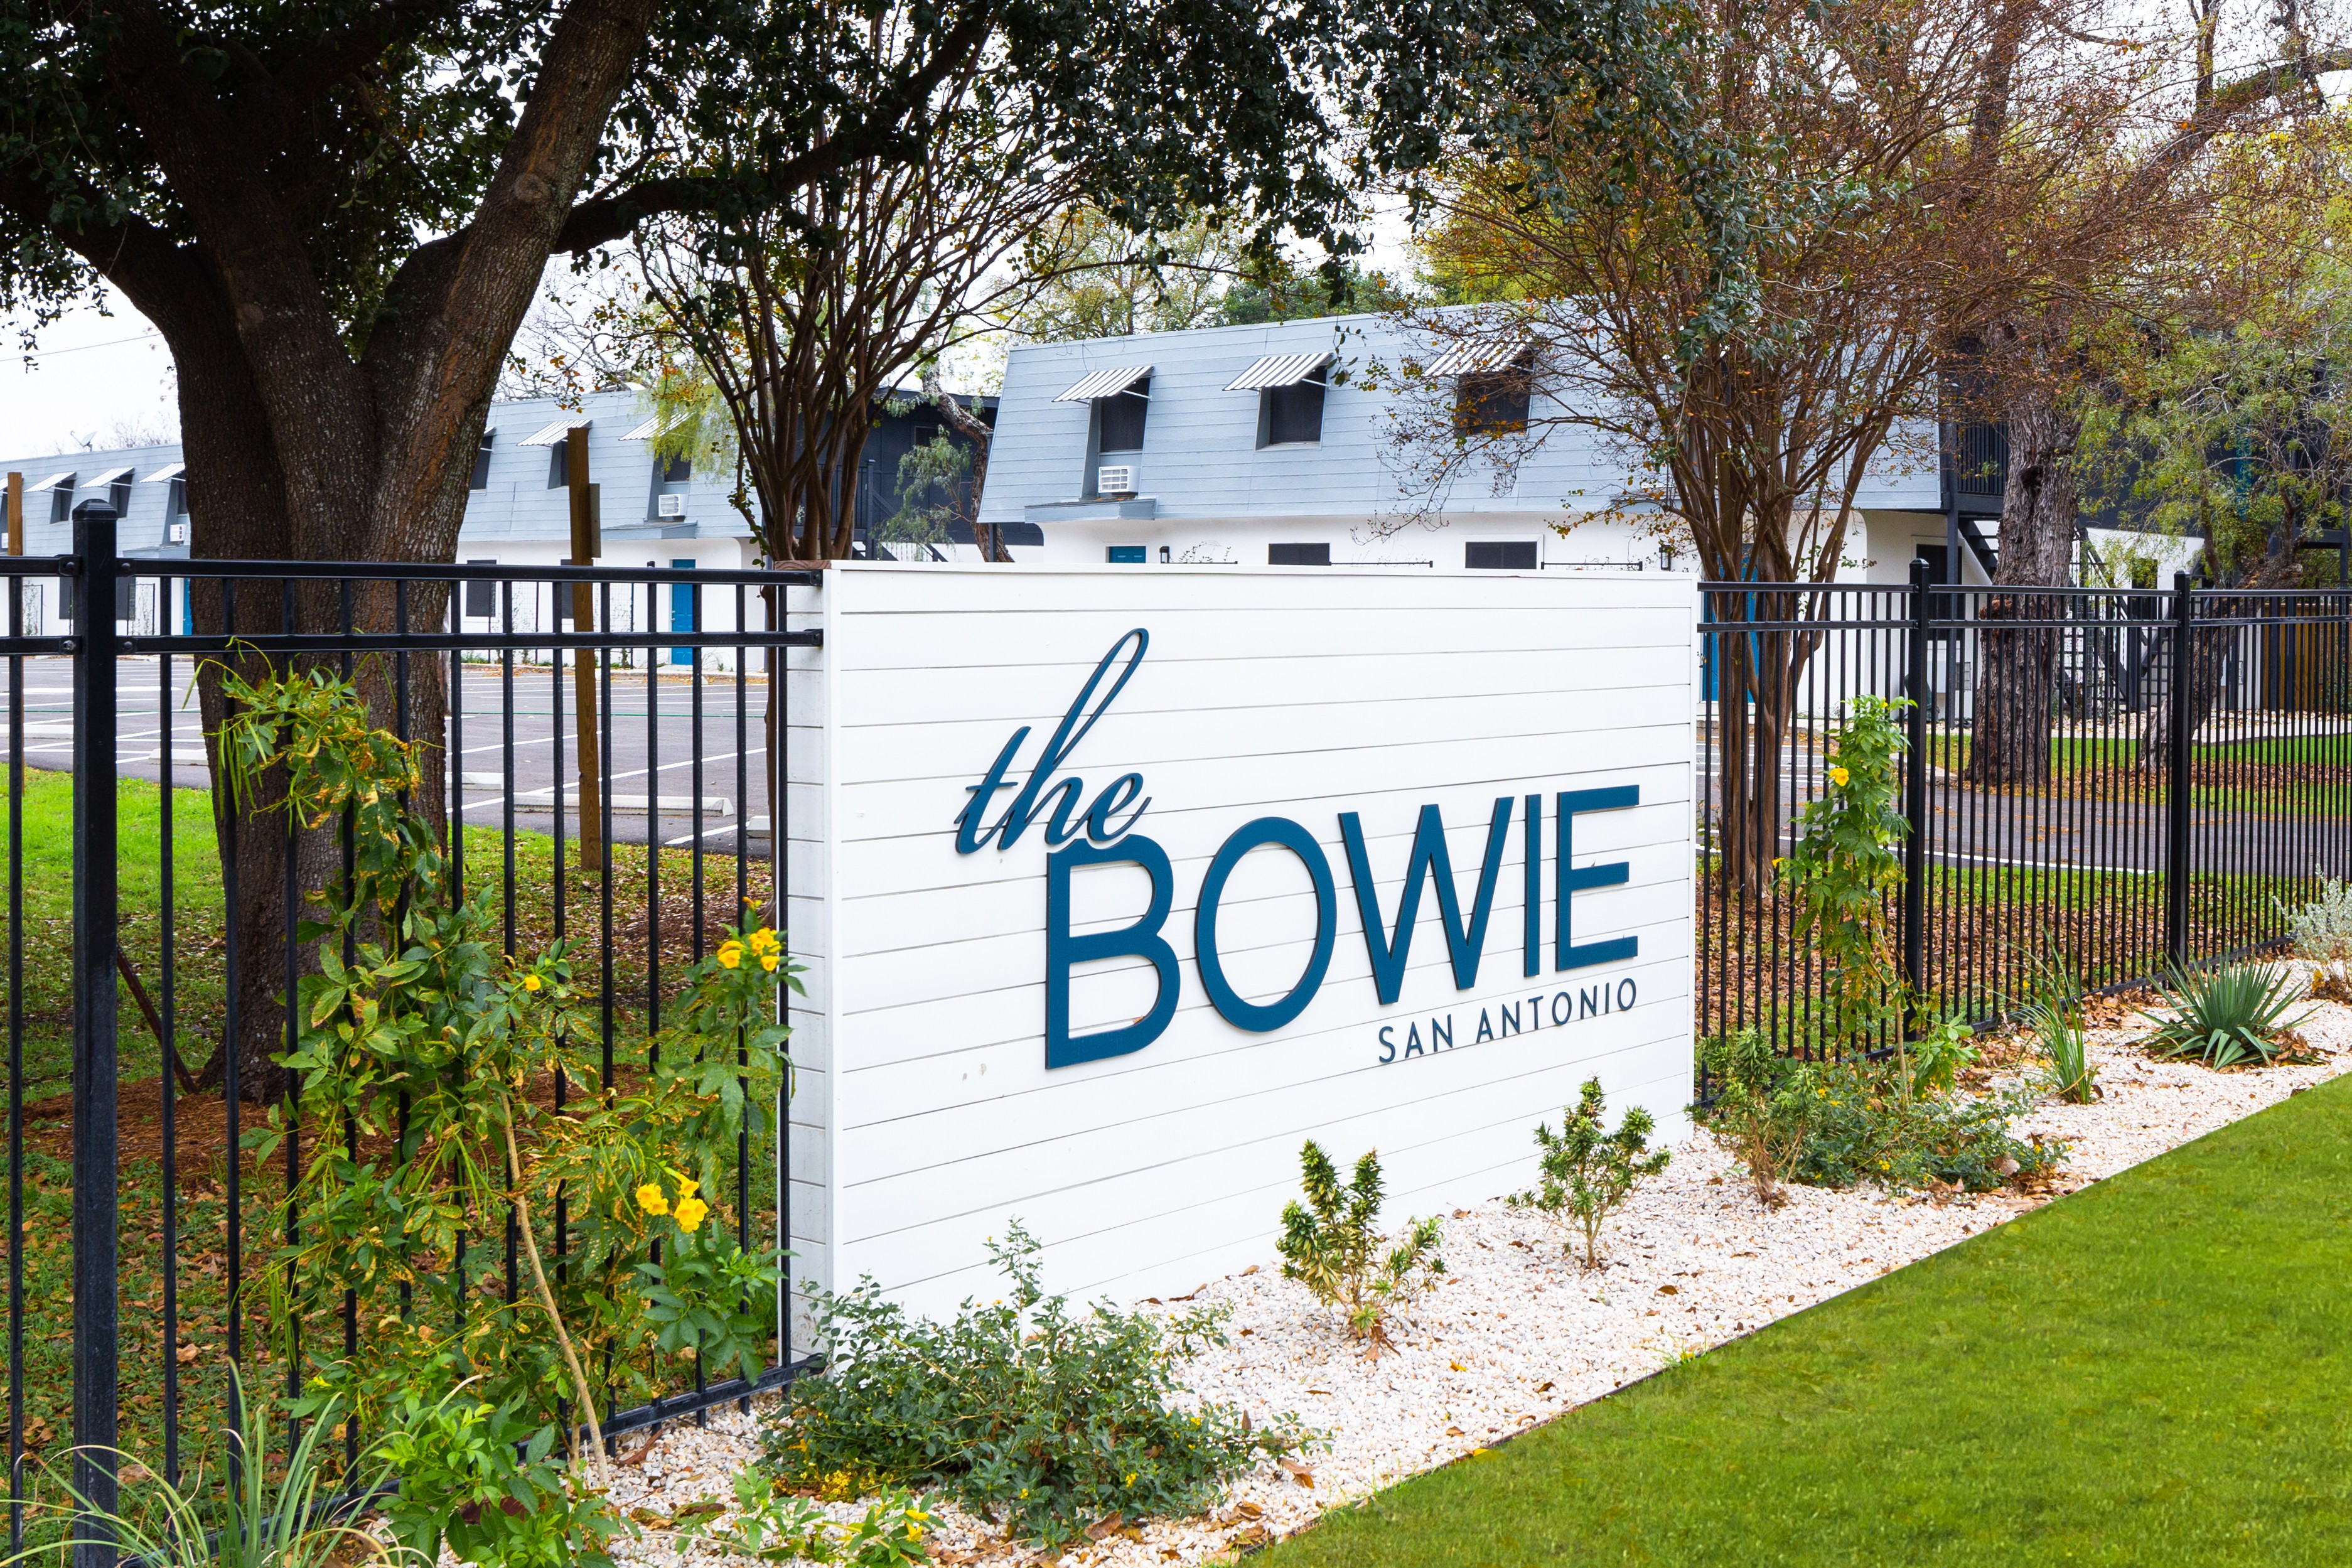 The Bowie